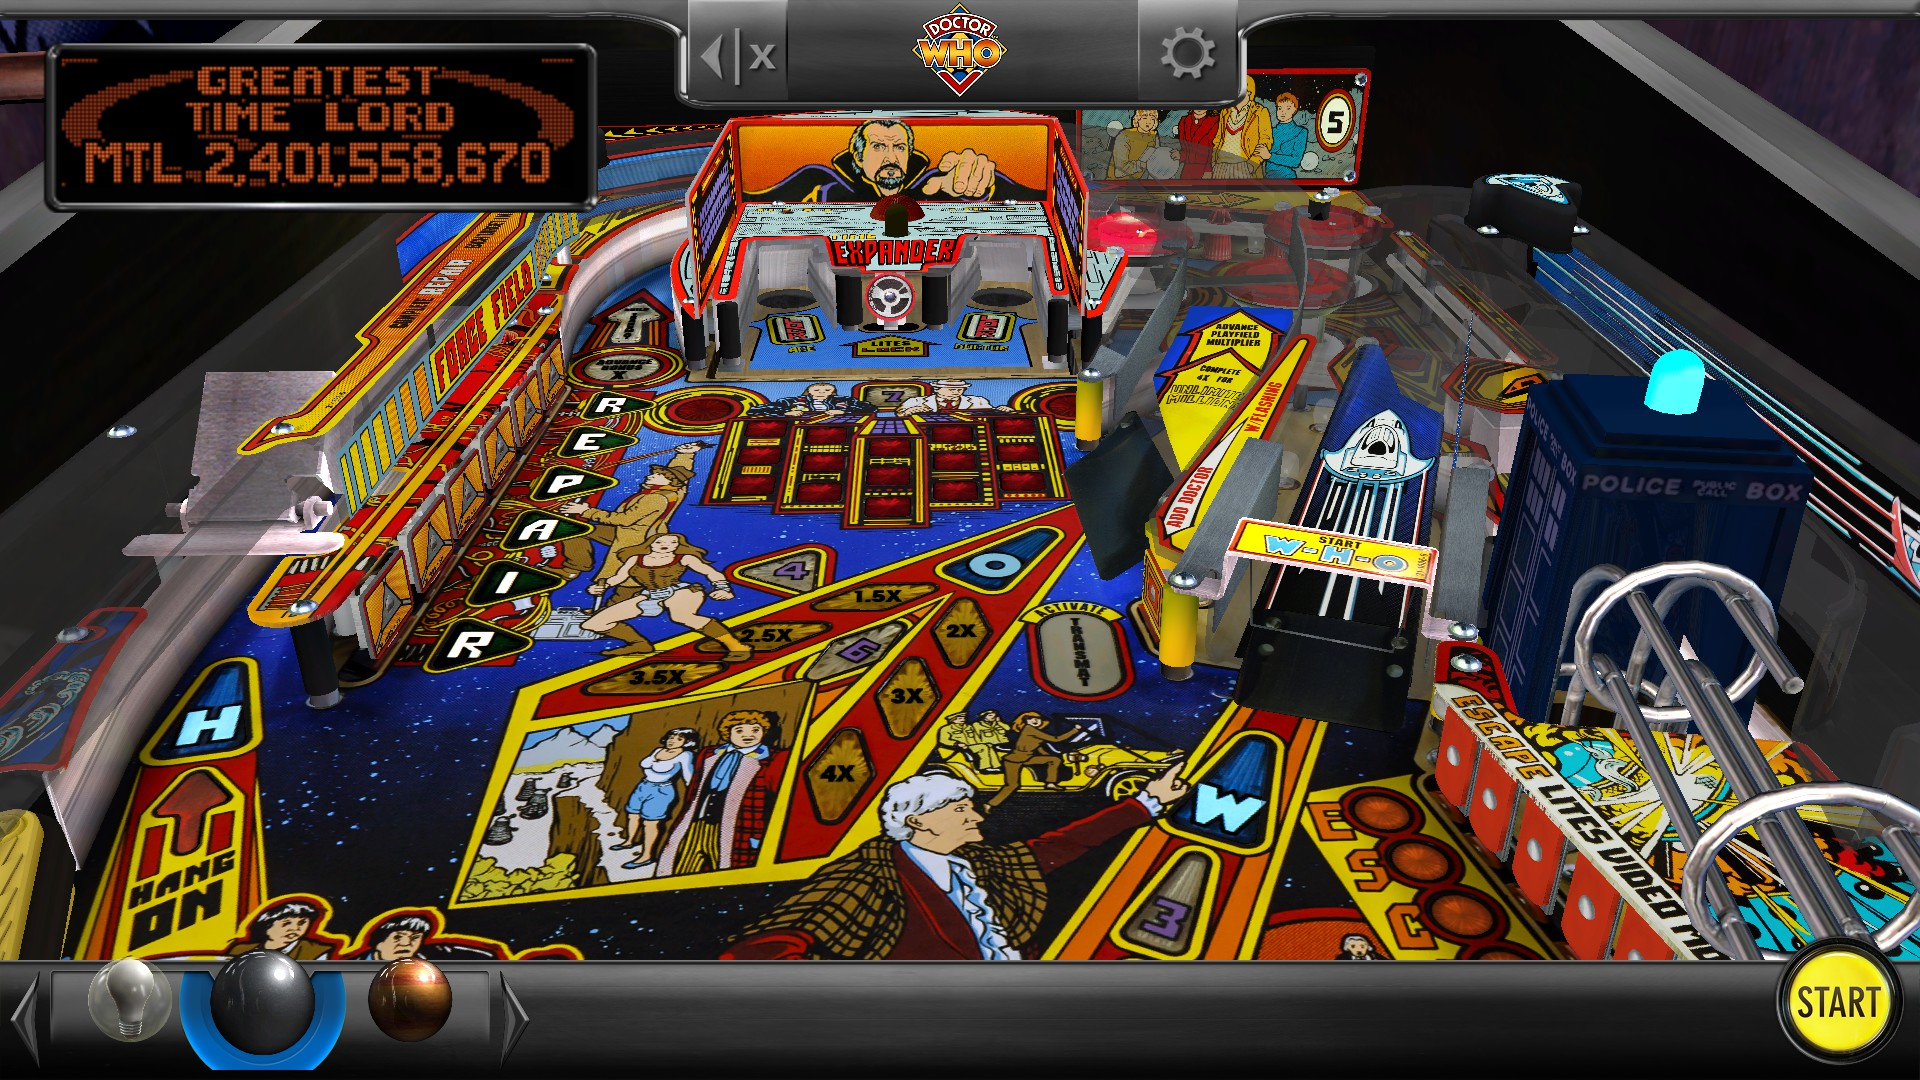 Mantalow: Pinball Arcade: Doctor Who (PC) 2,401,558,670 points on 2016-12-09 01:21:06